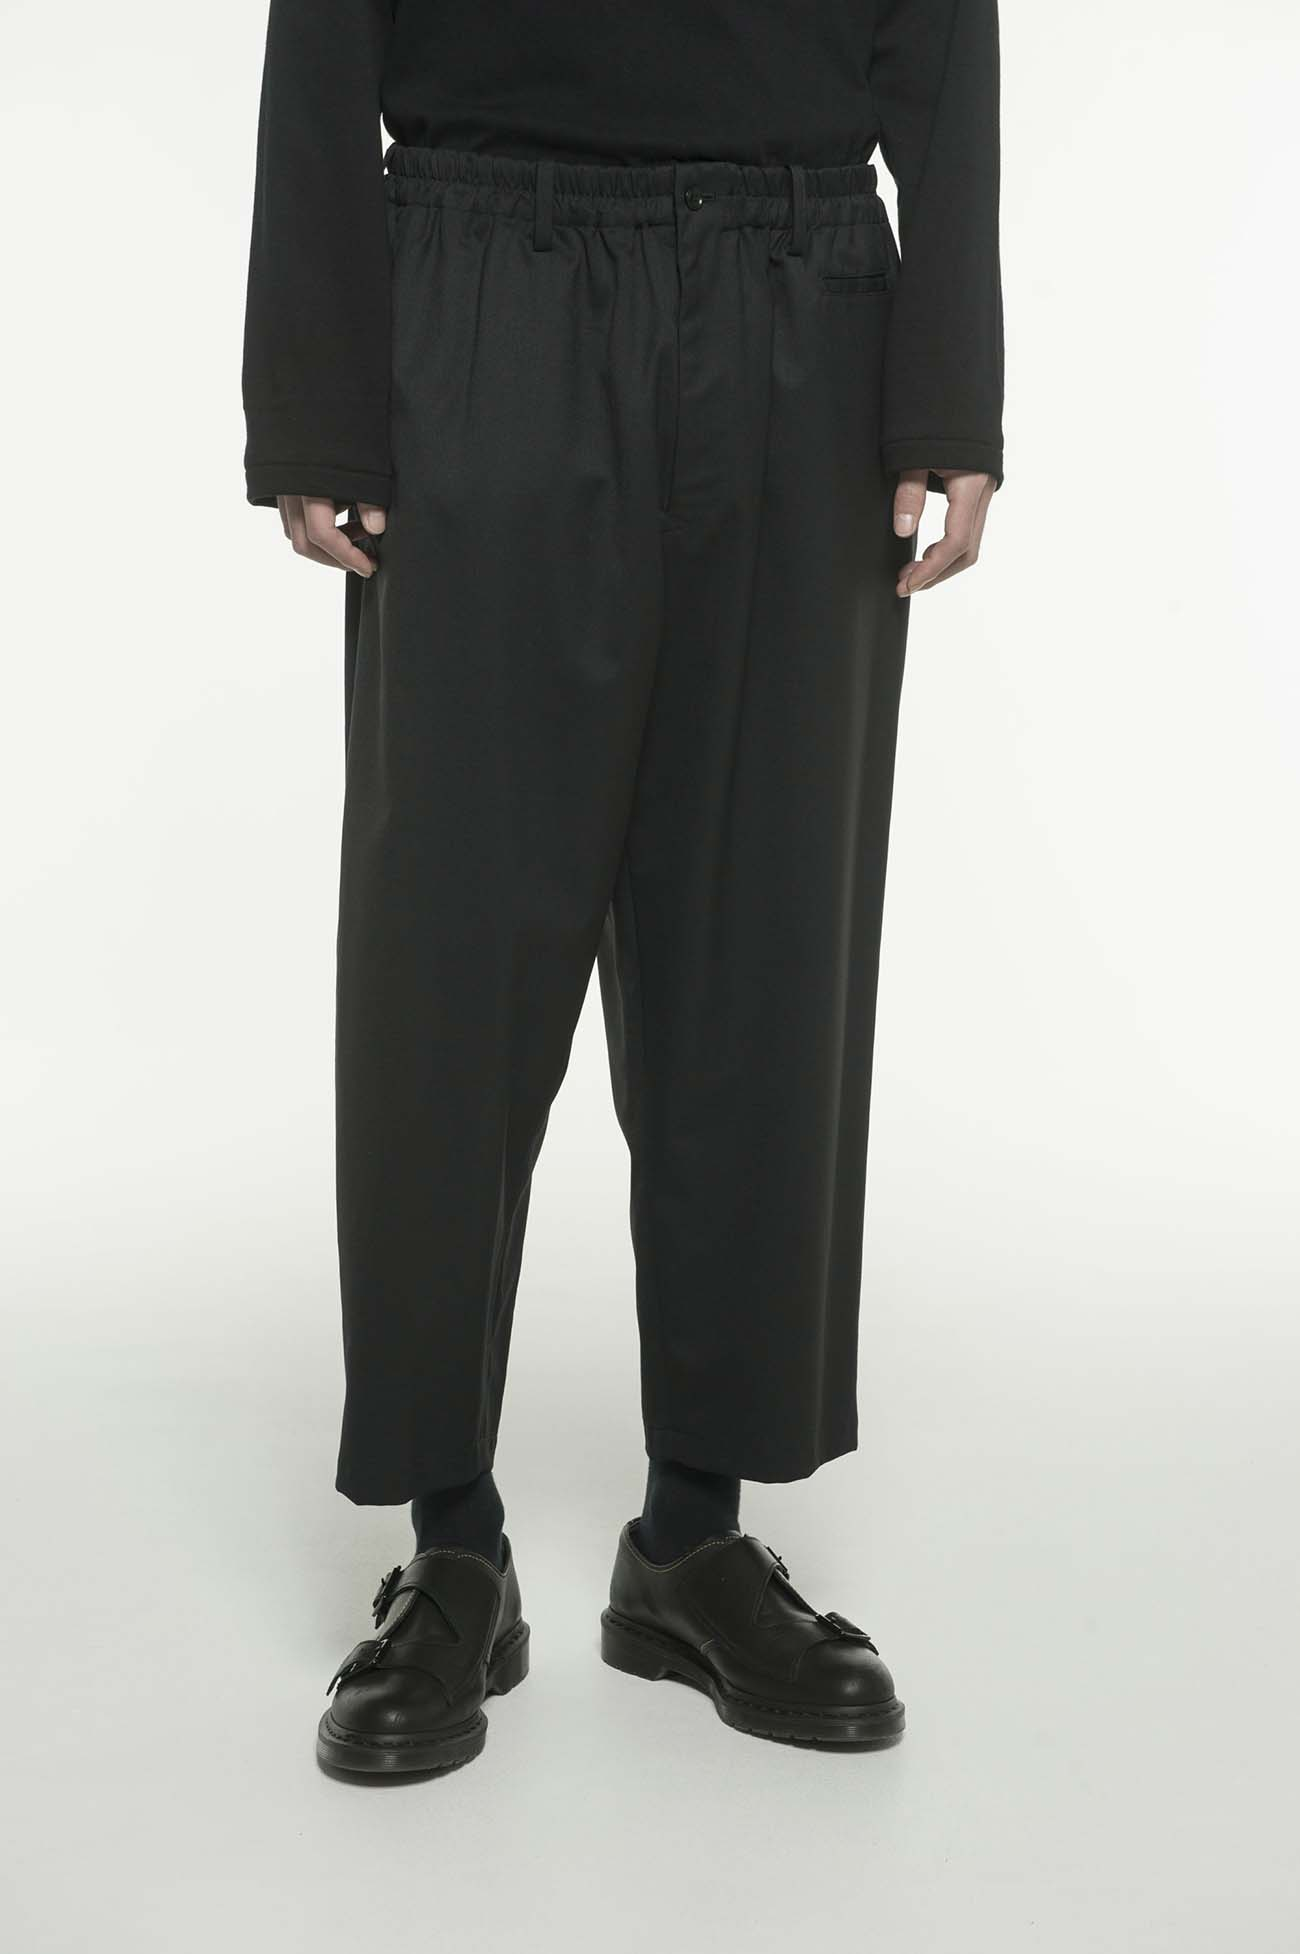 T/W Twill West Rubber Medium Tepado Pants